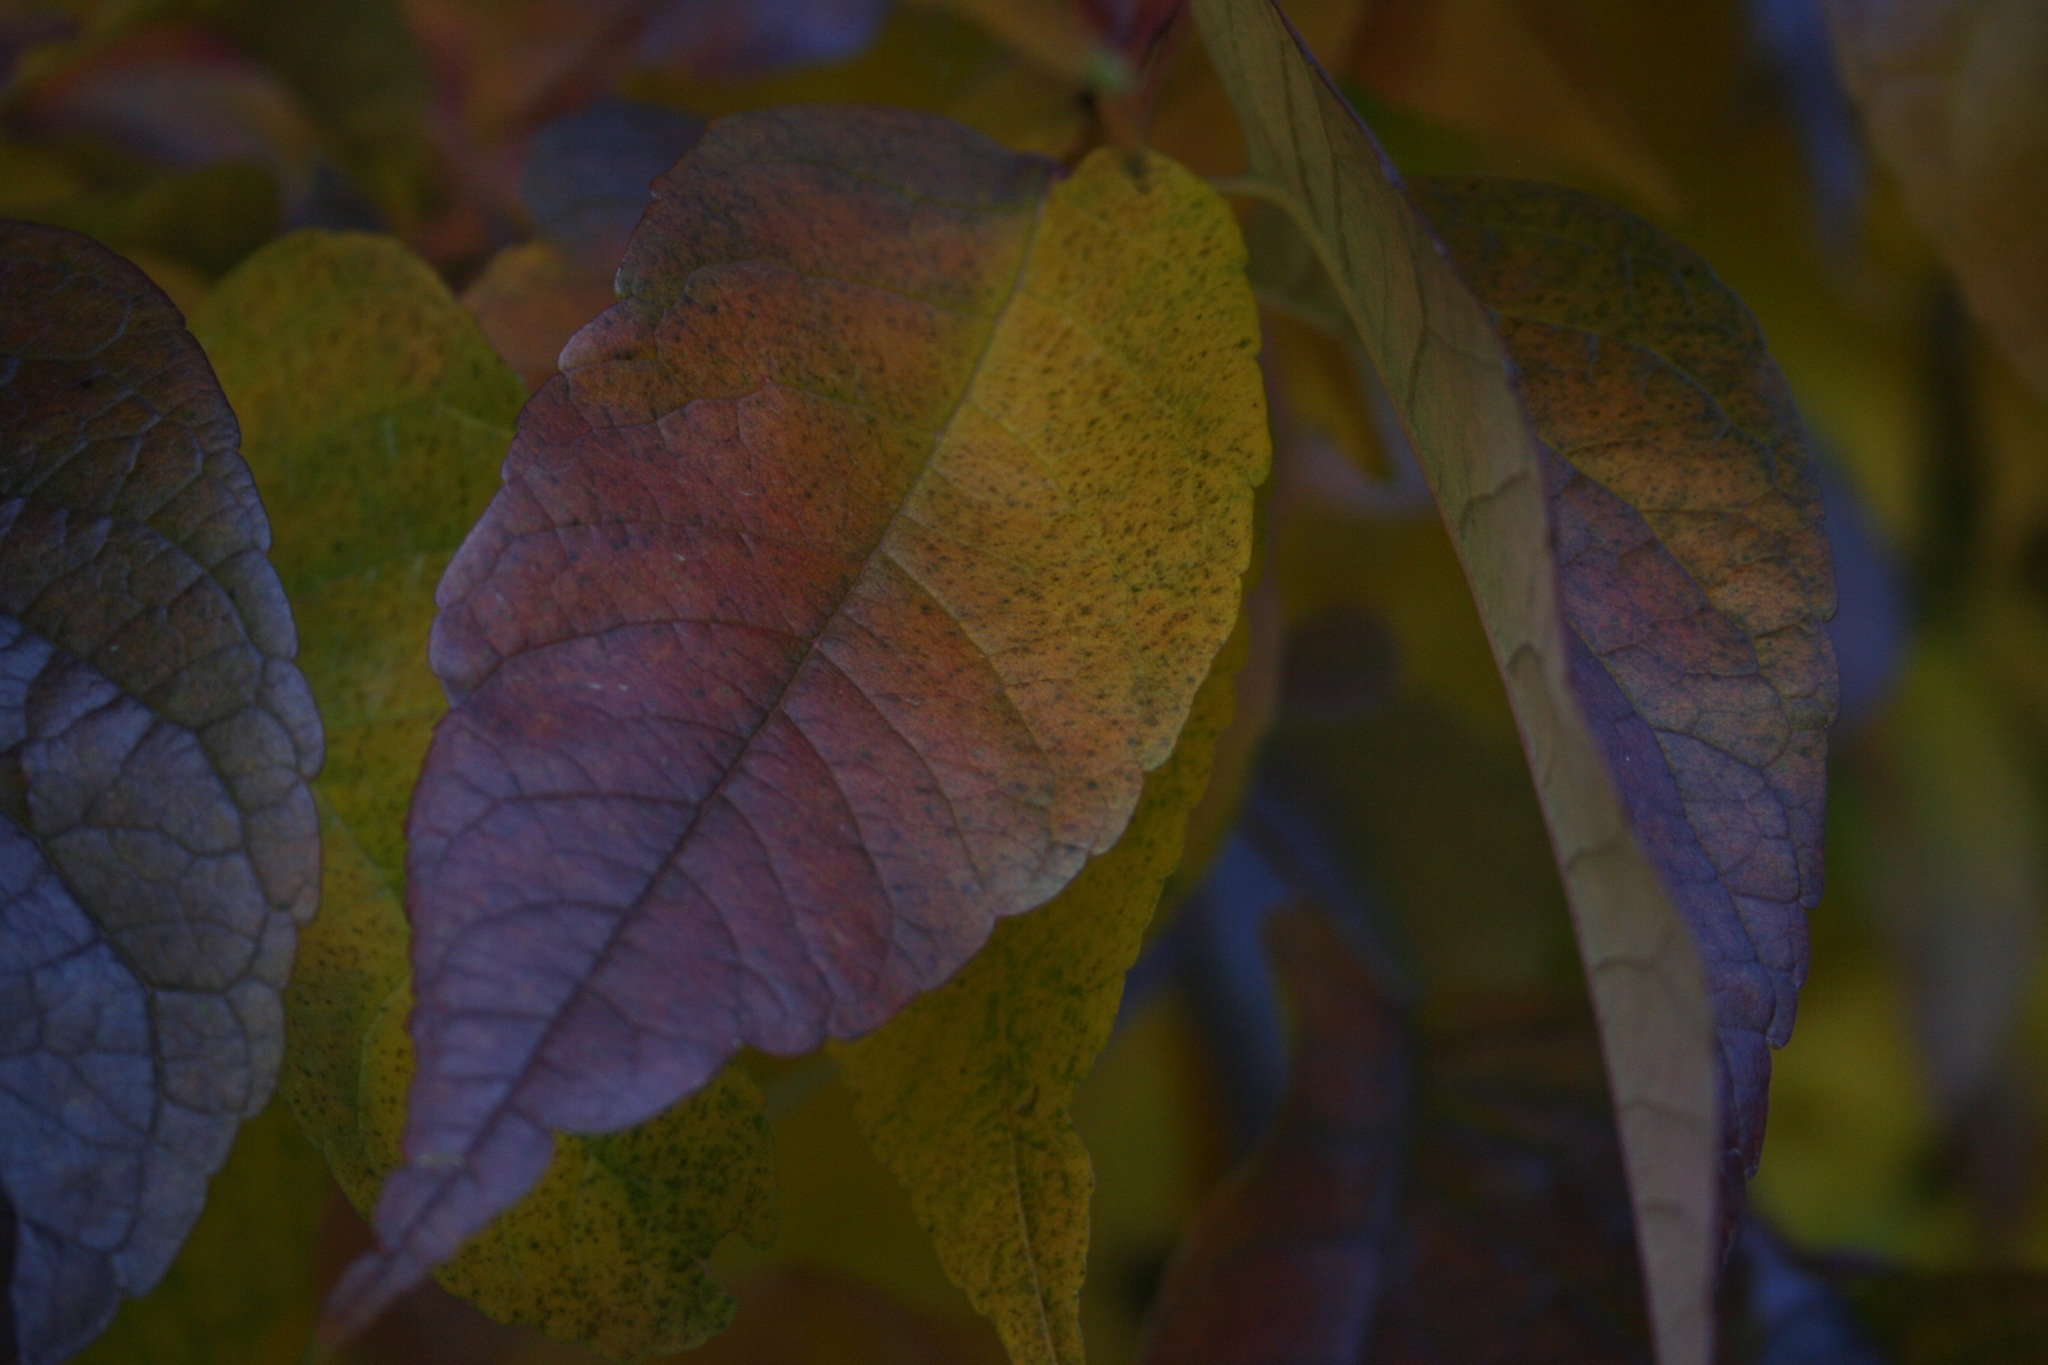 Fall Leaves by debs.nelsonfisher